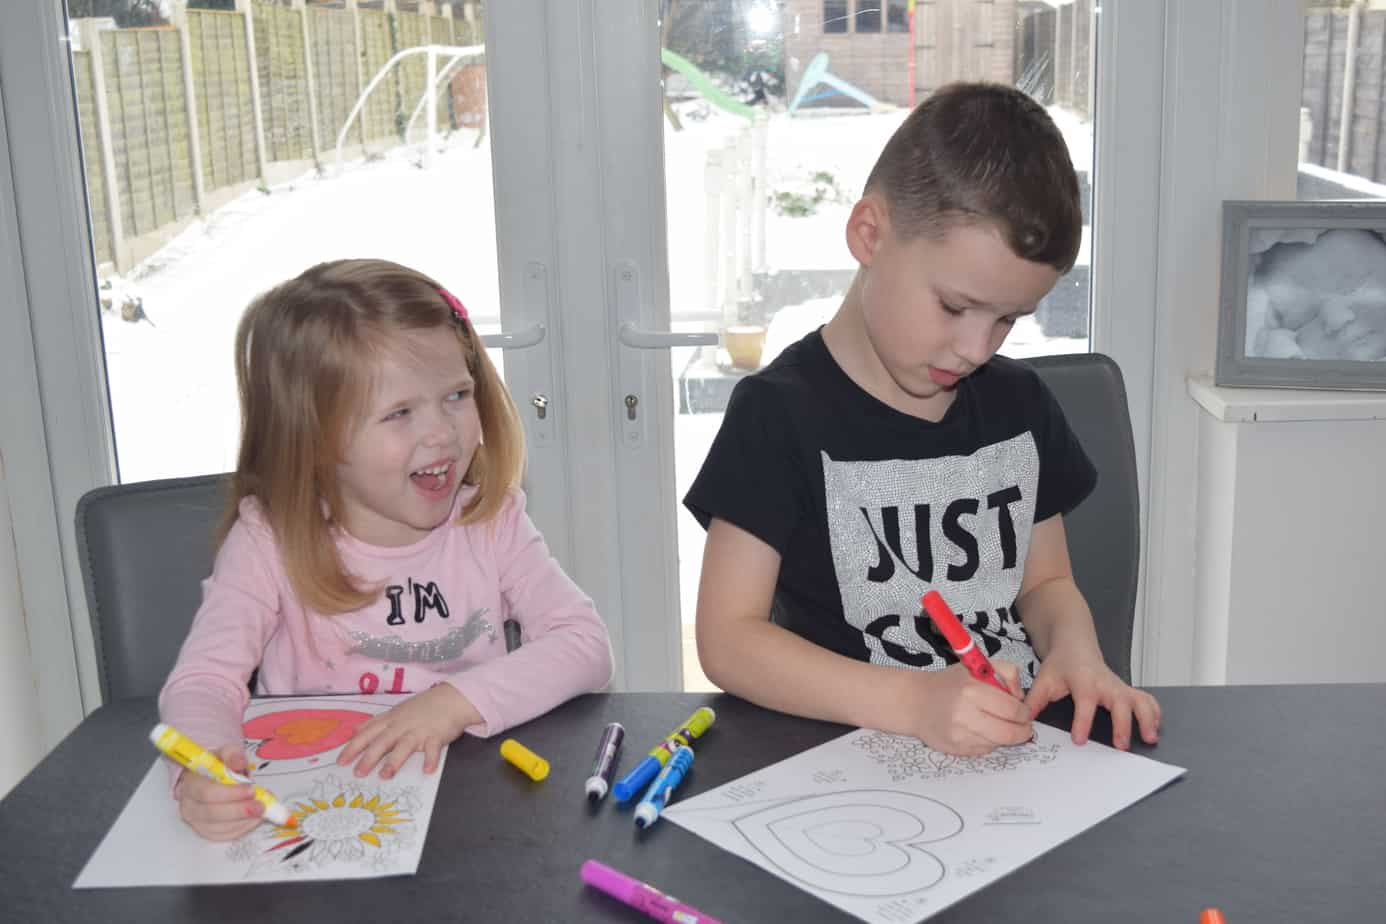 The children laughing together while enjoying their colouring